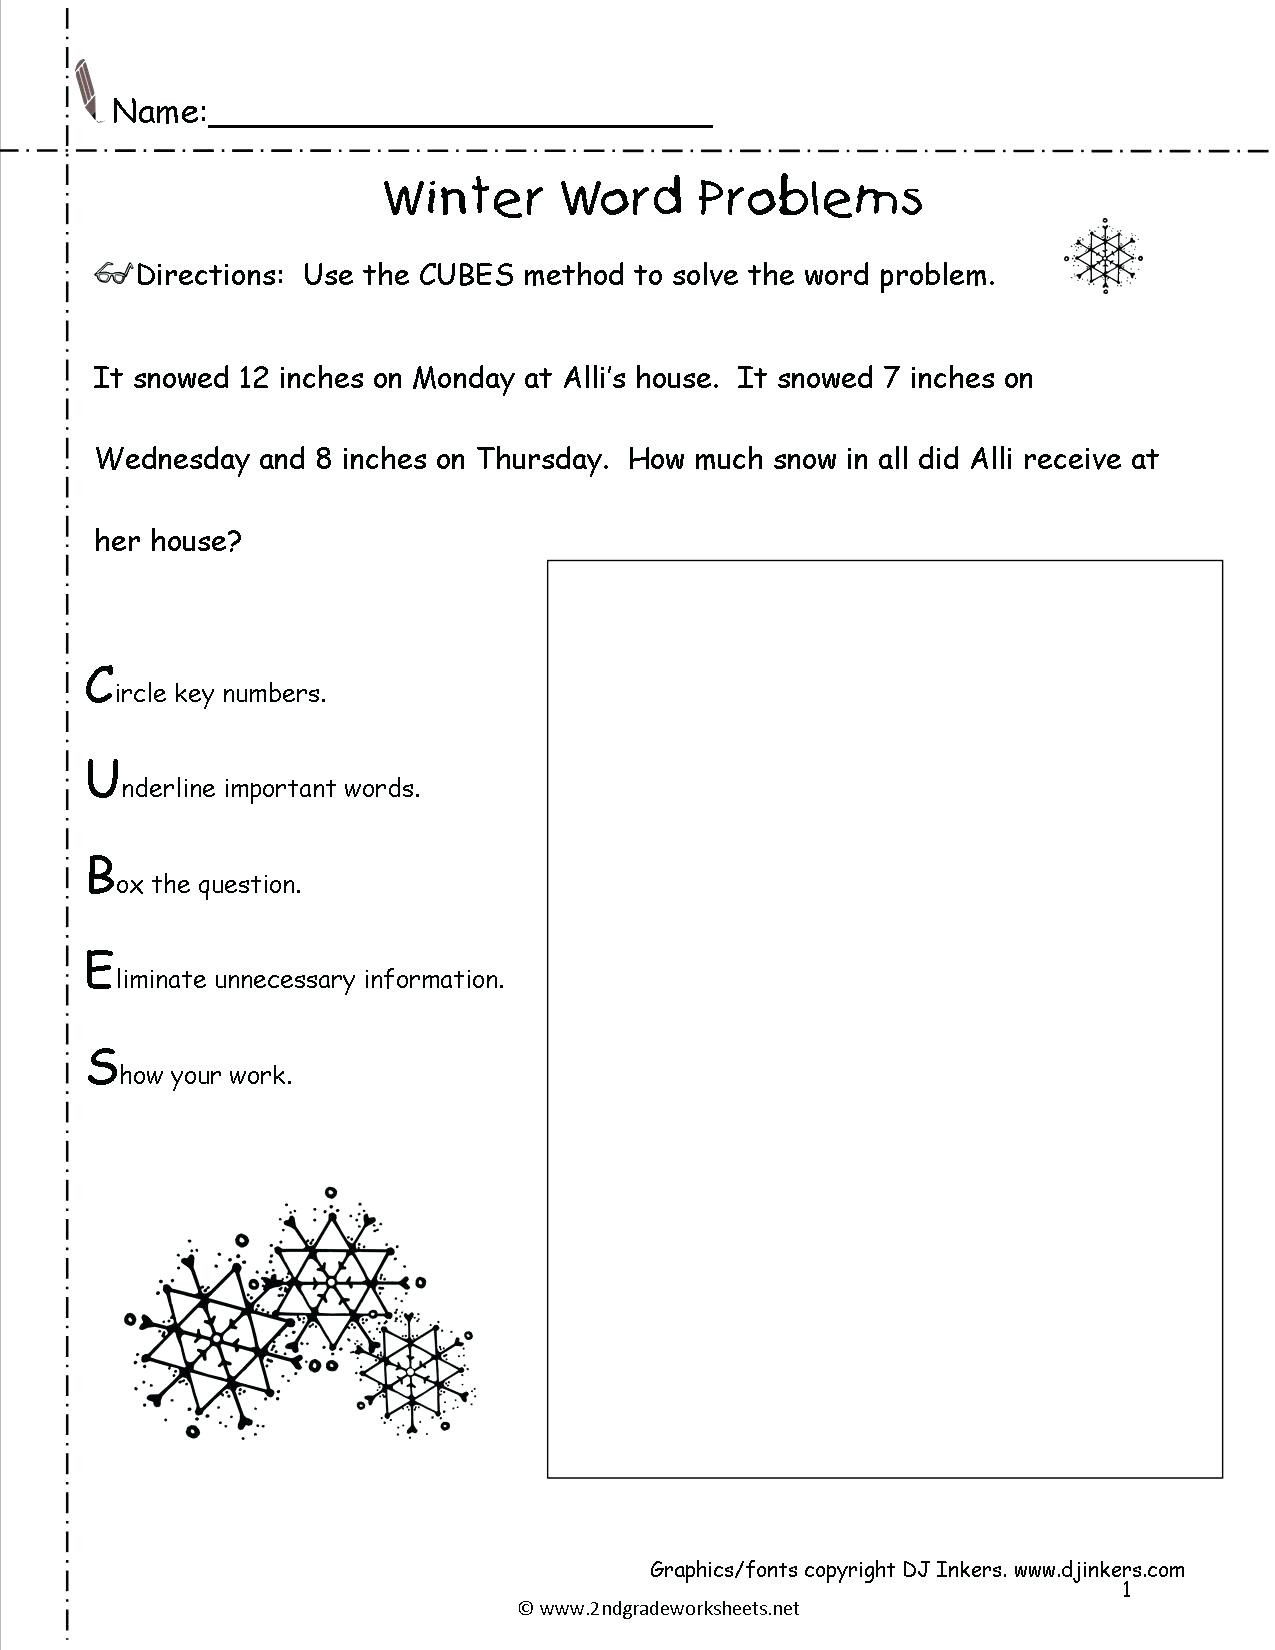 Theme Worksheets 2nd Grade Finding themes Worksheet